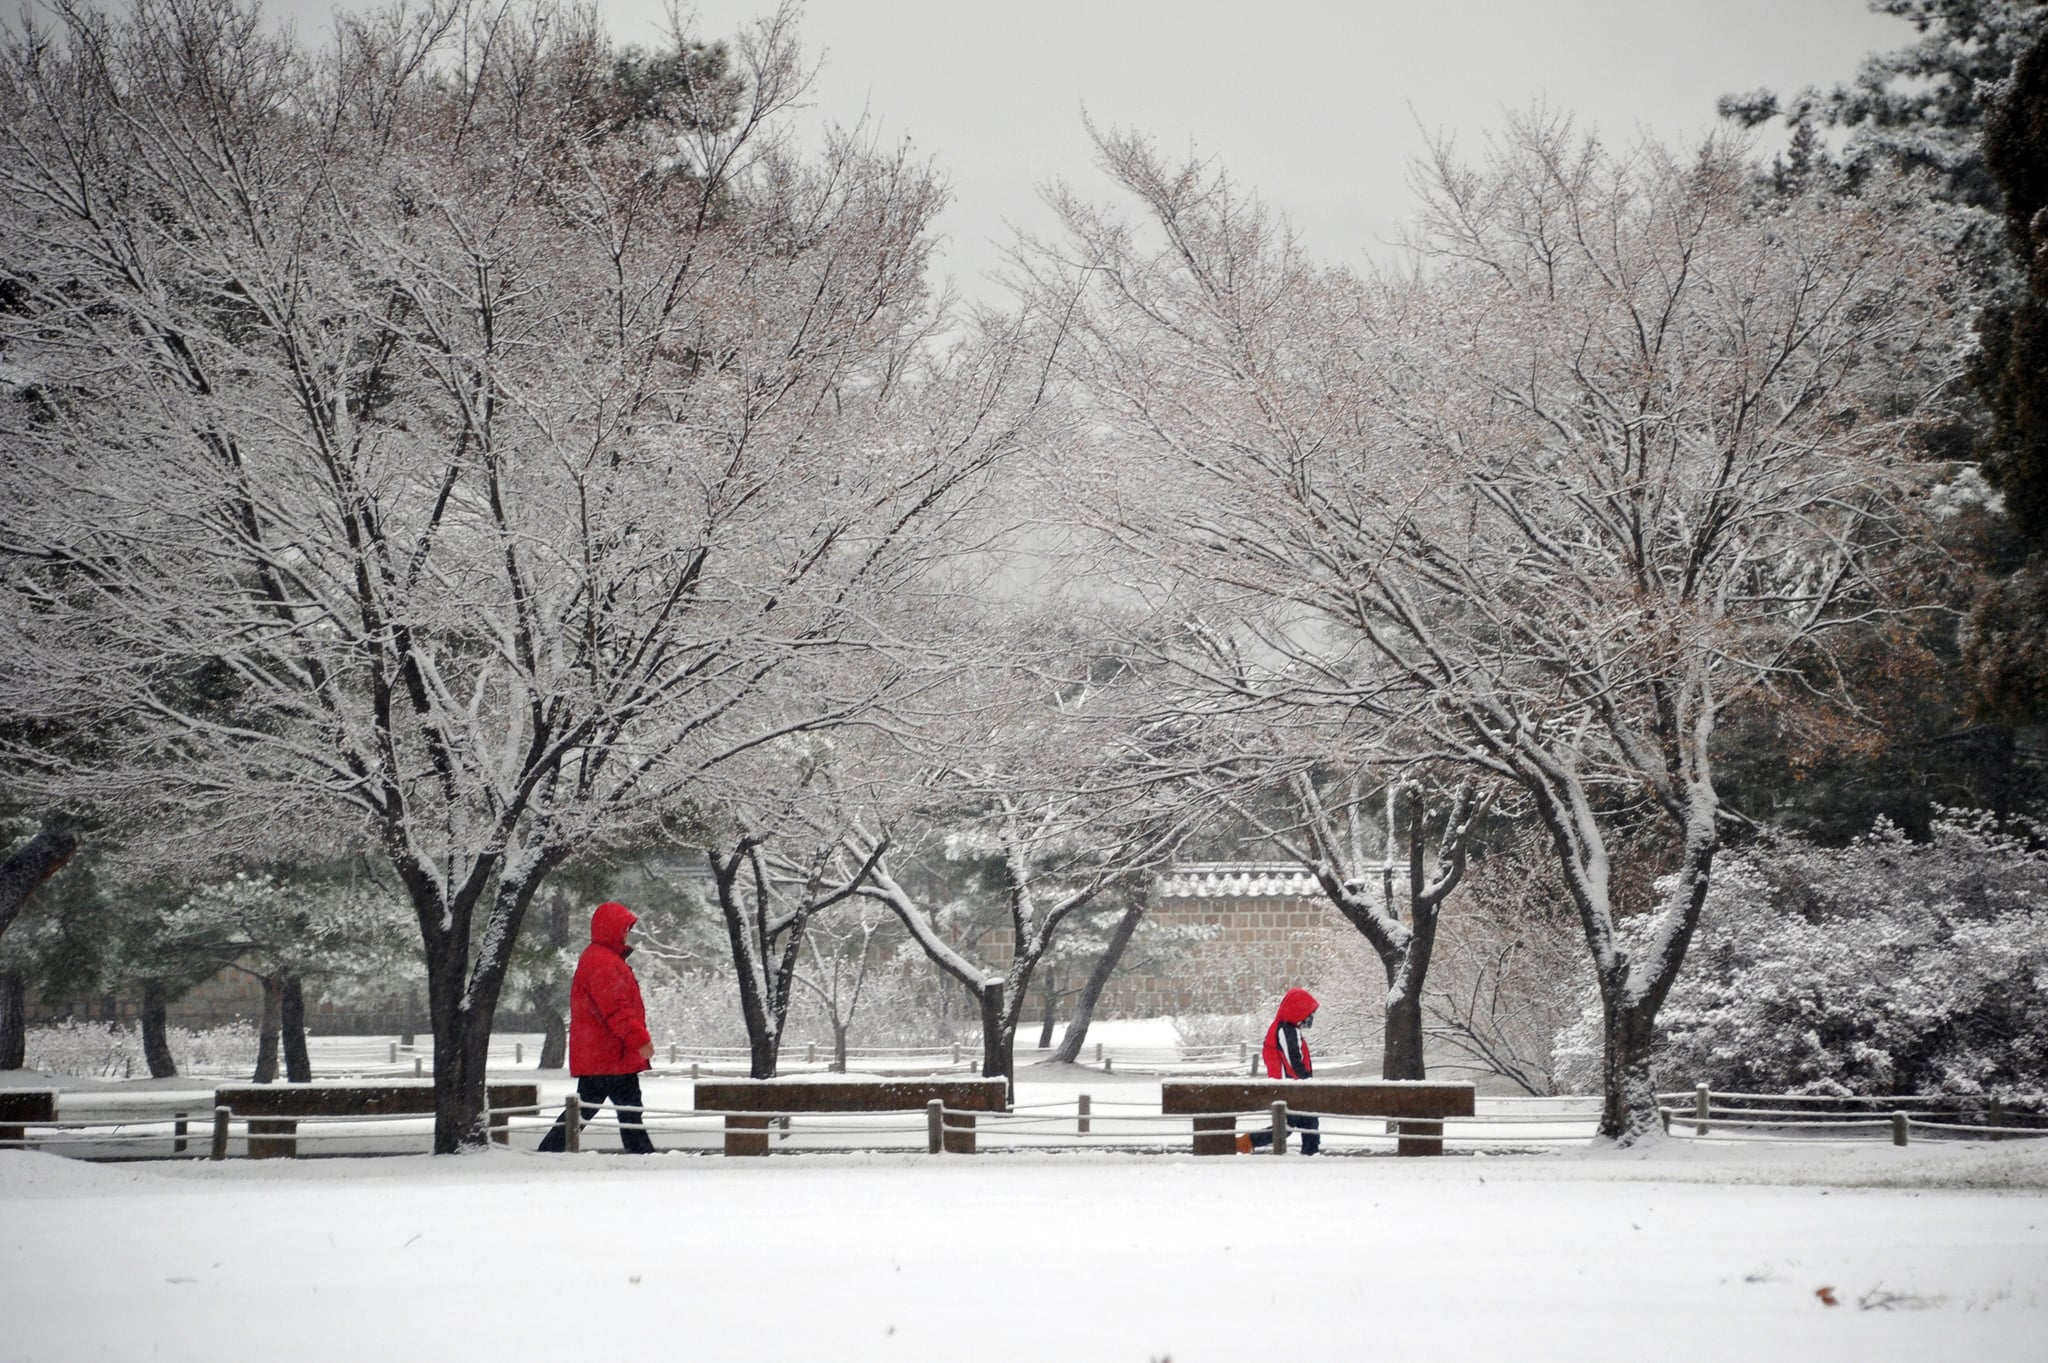 People in Seoul, South Korea, braved chilly weather following a heavy snowfall.